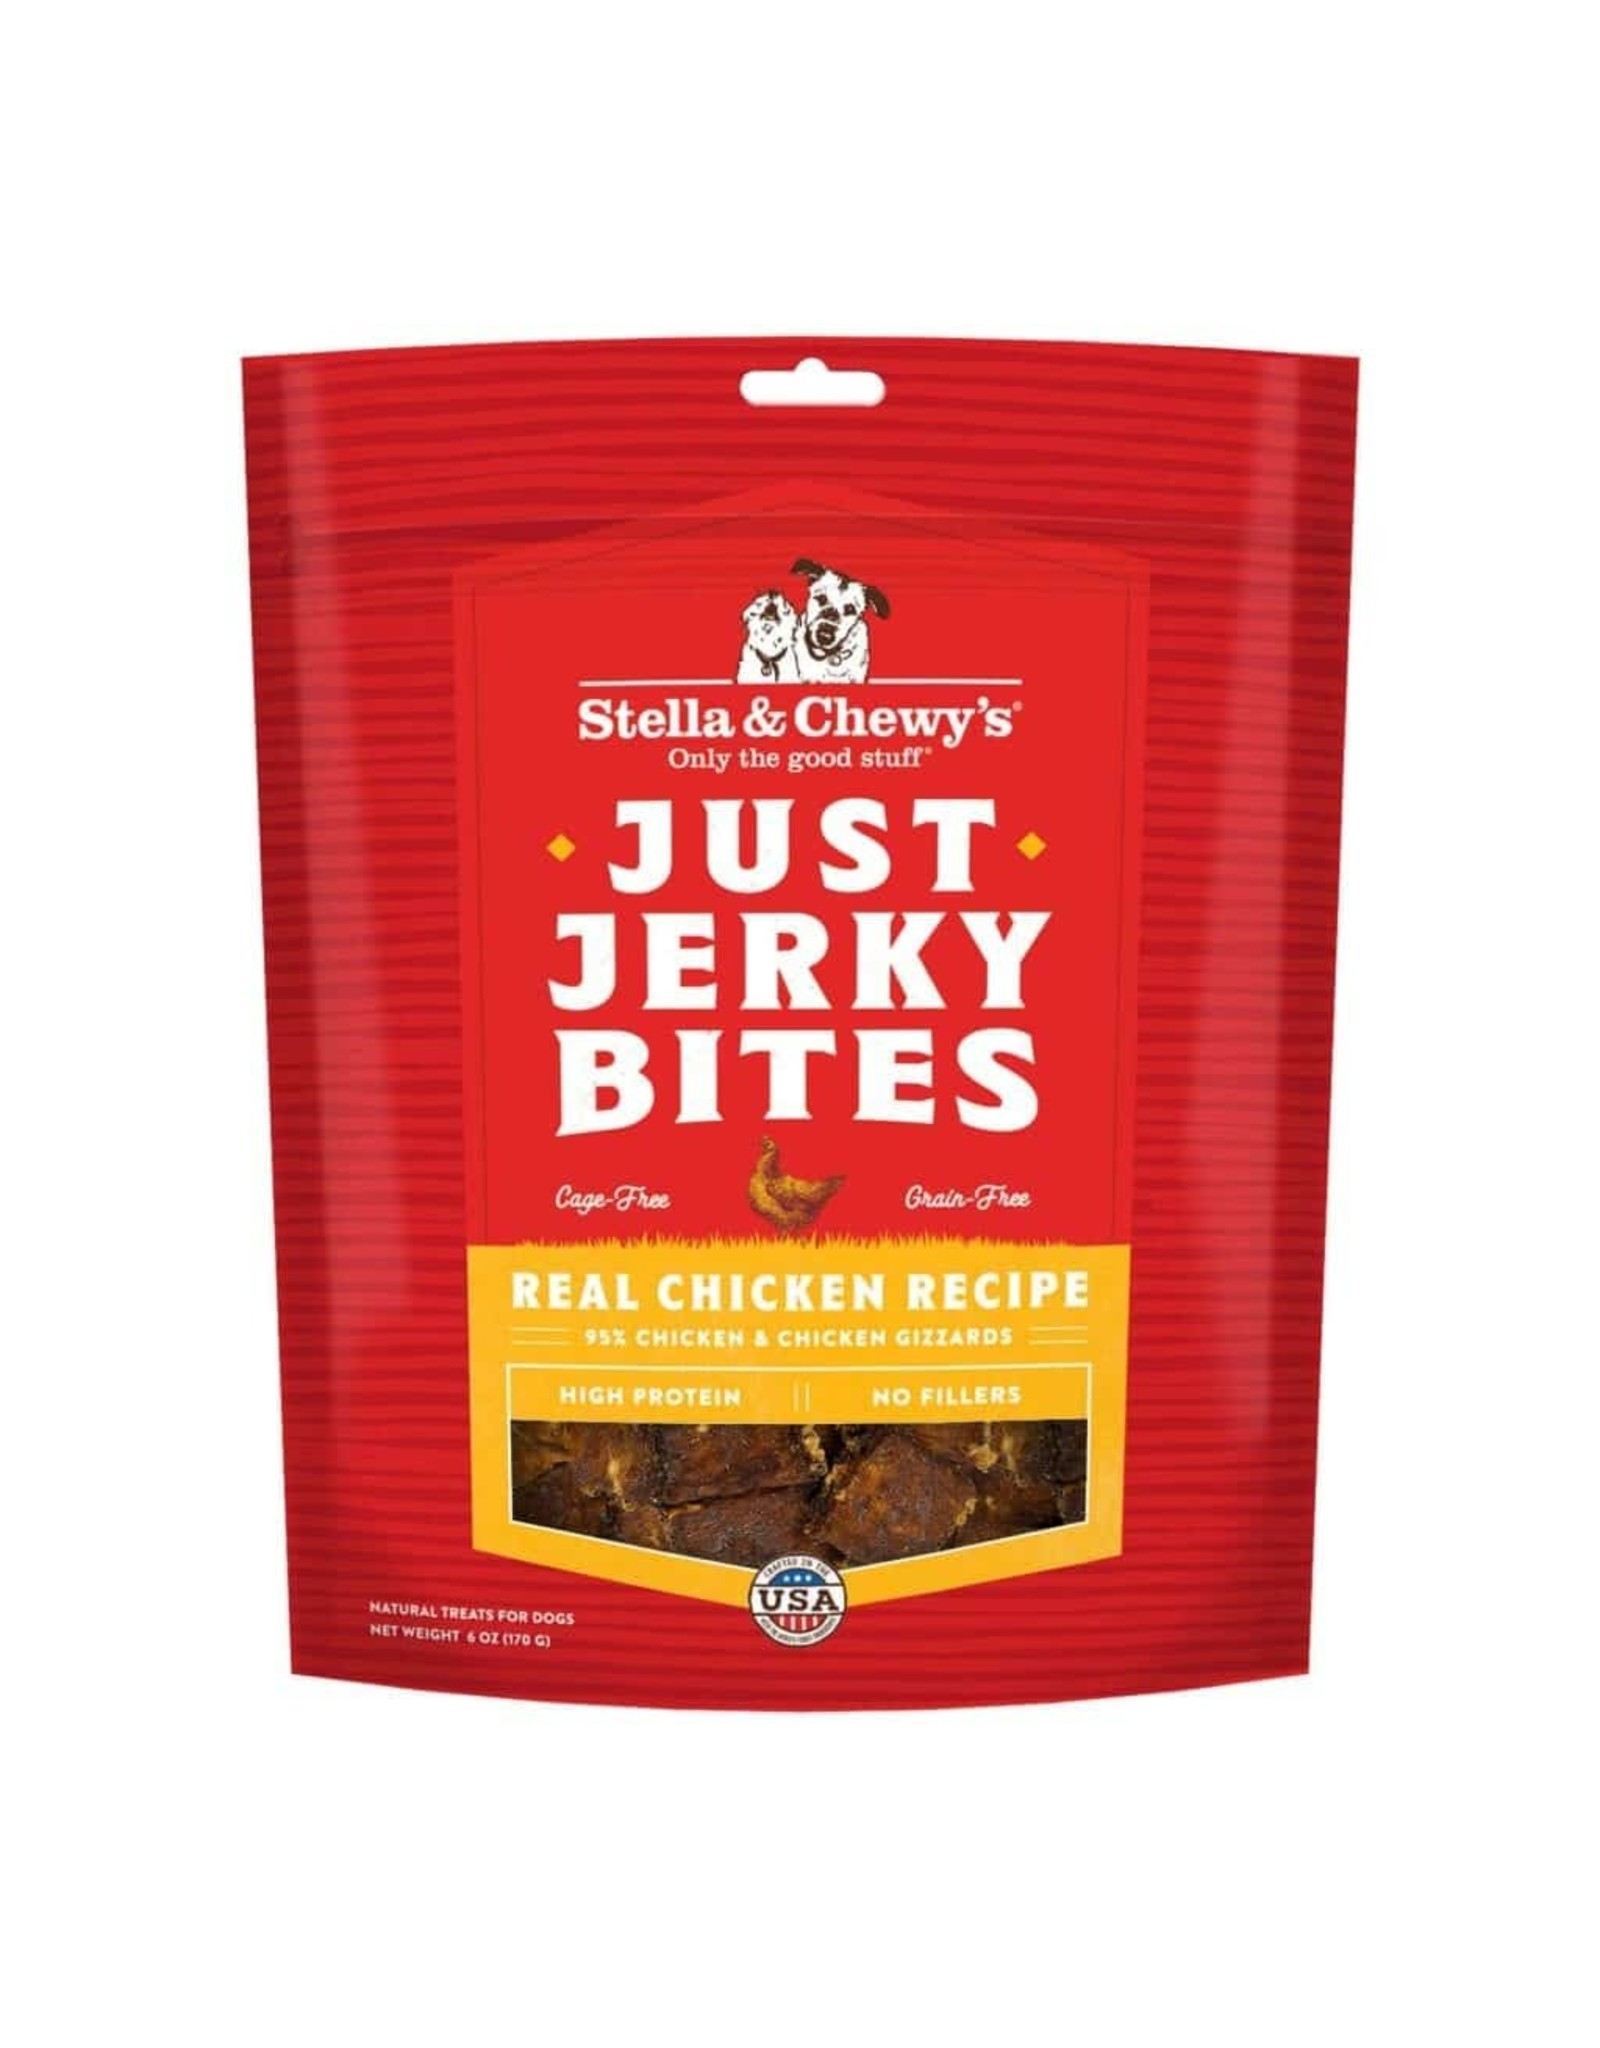 Stella and Chewys Stella and Chewy's Just Jerky Bites Real Chicken Recipe 6oz